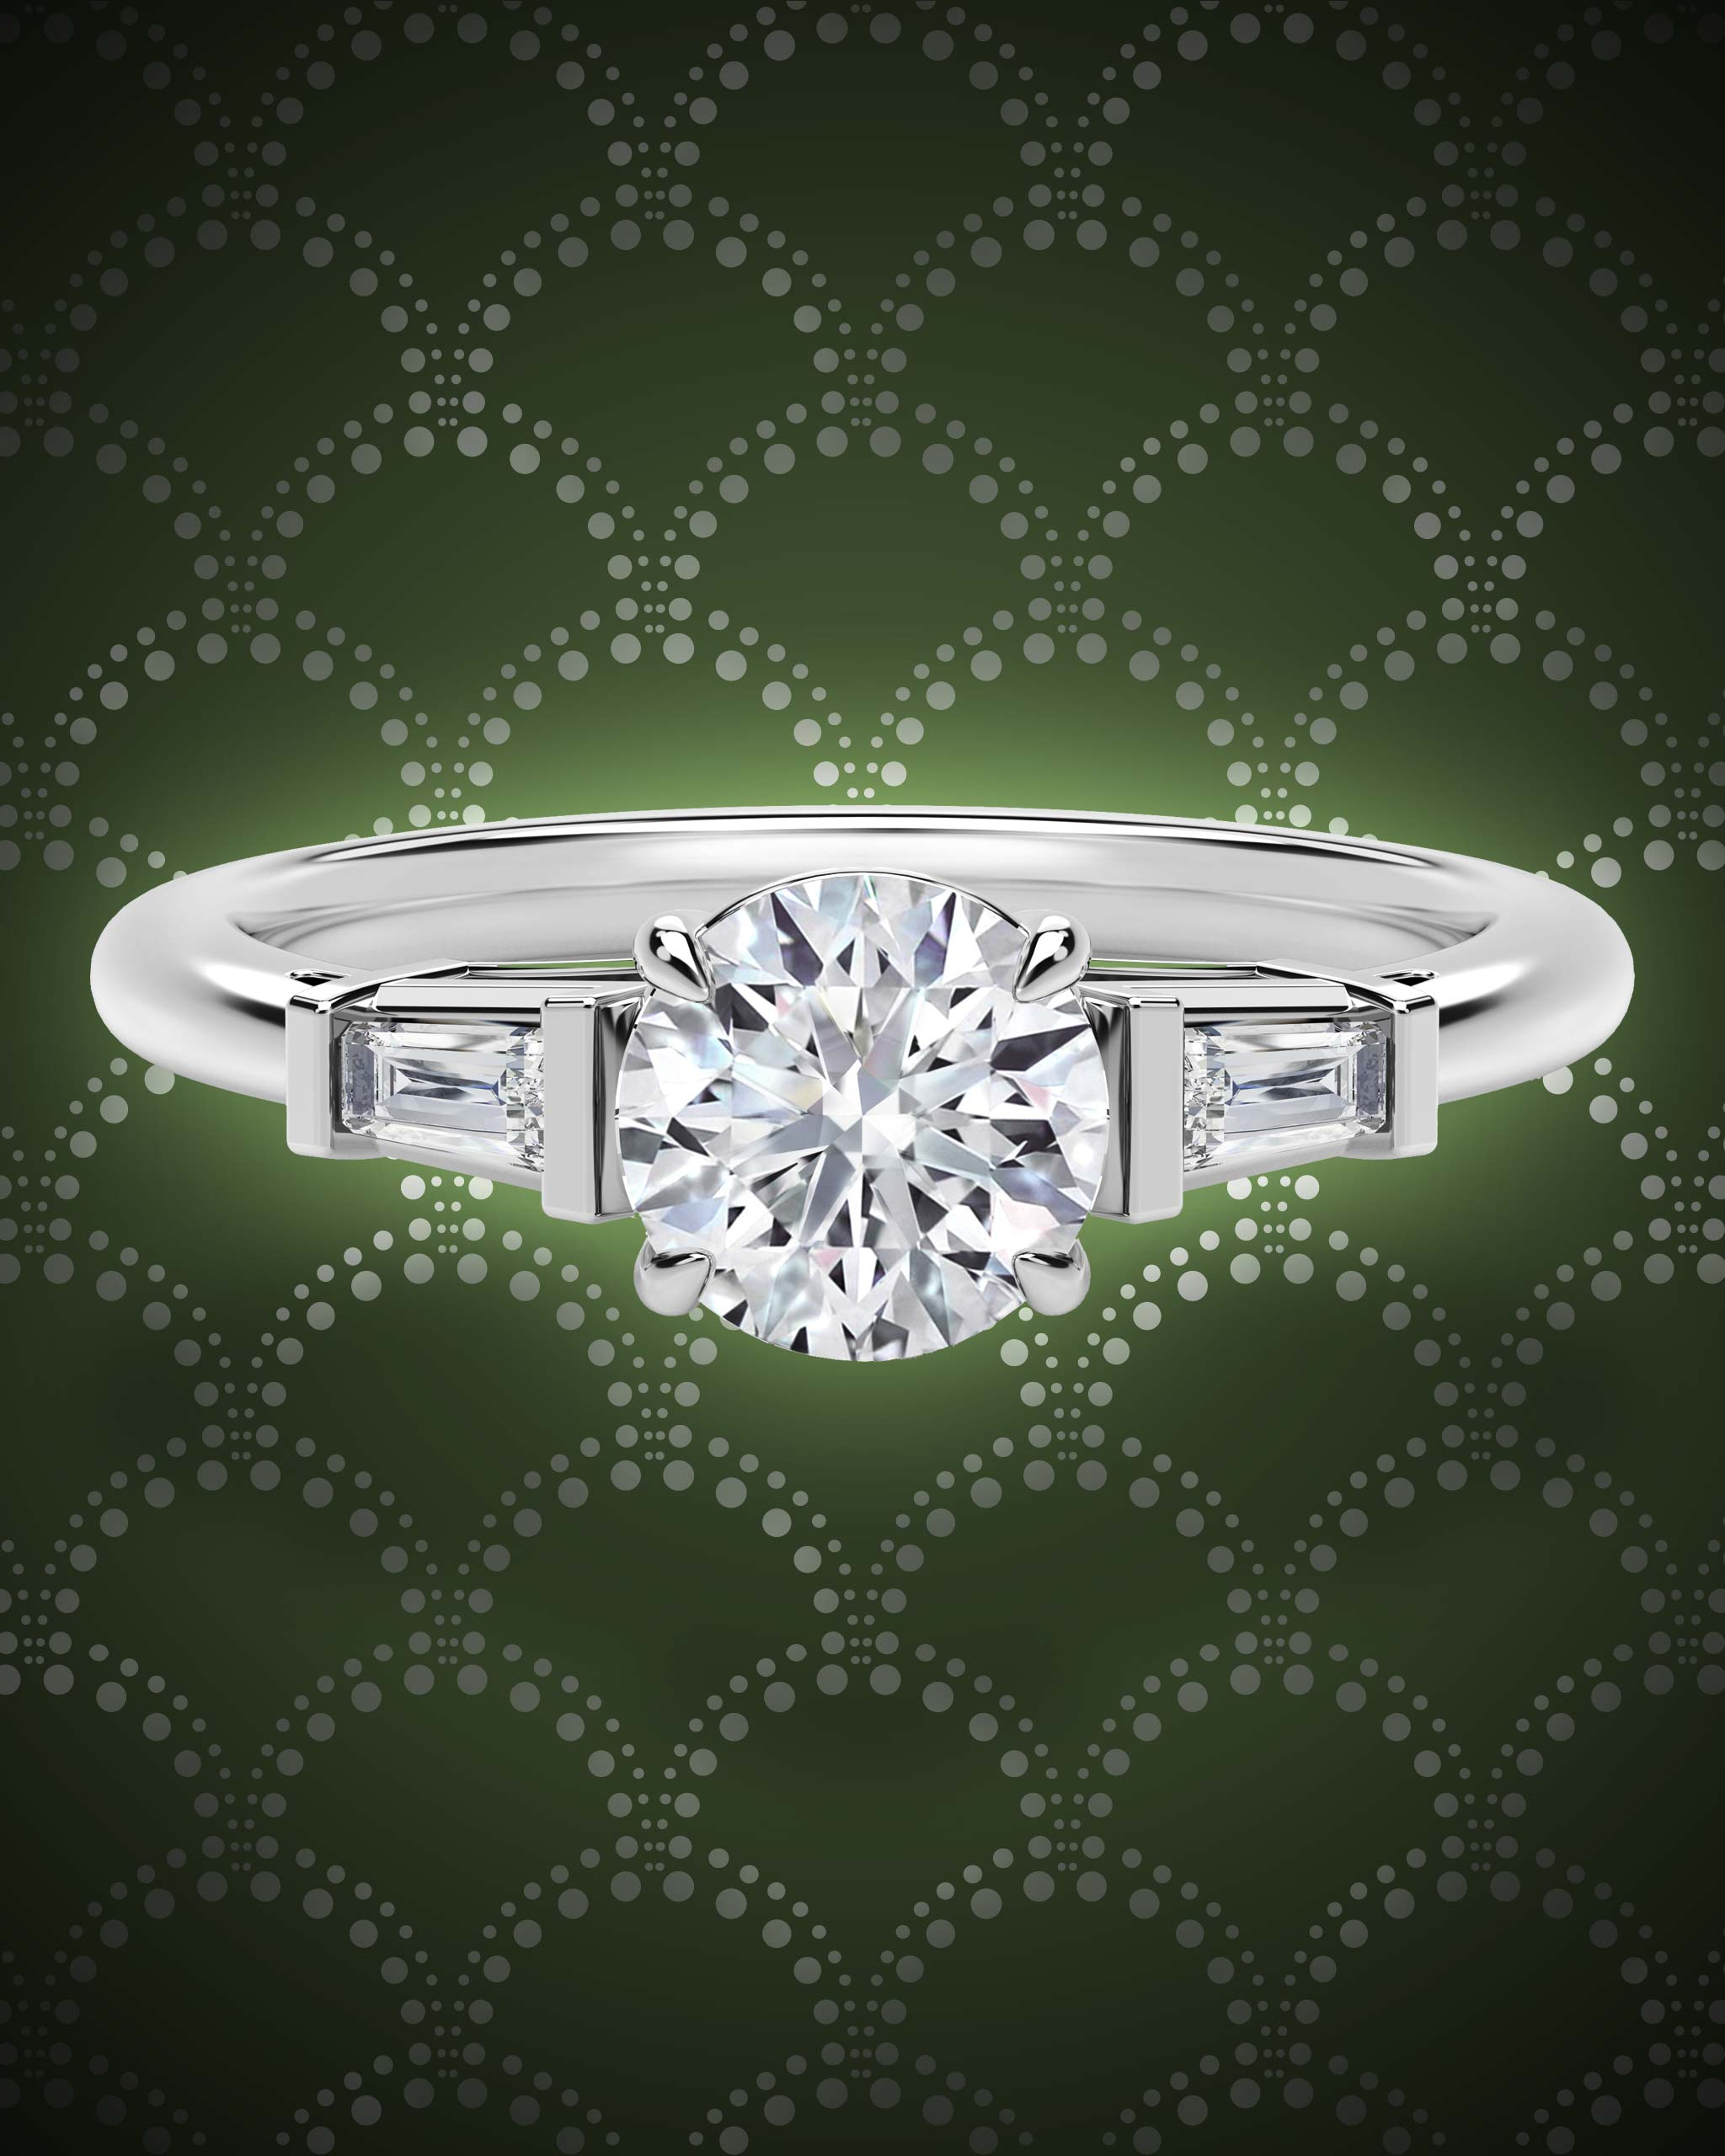 Round cut diamond Art Deco ring hugged by baguette diamonds set within a platinum band from Forevermark